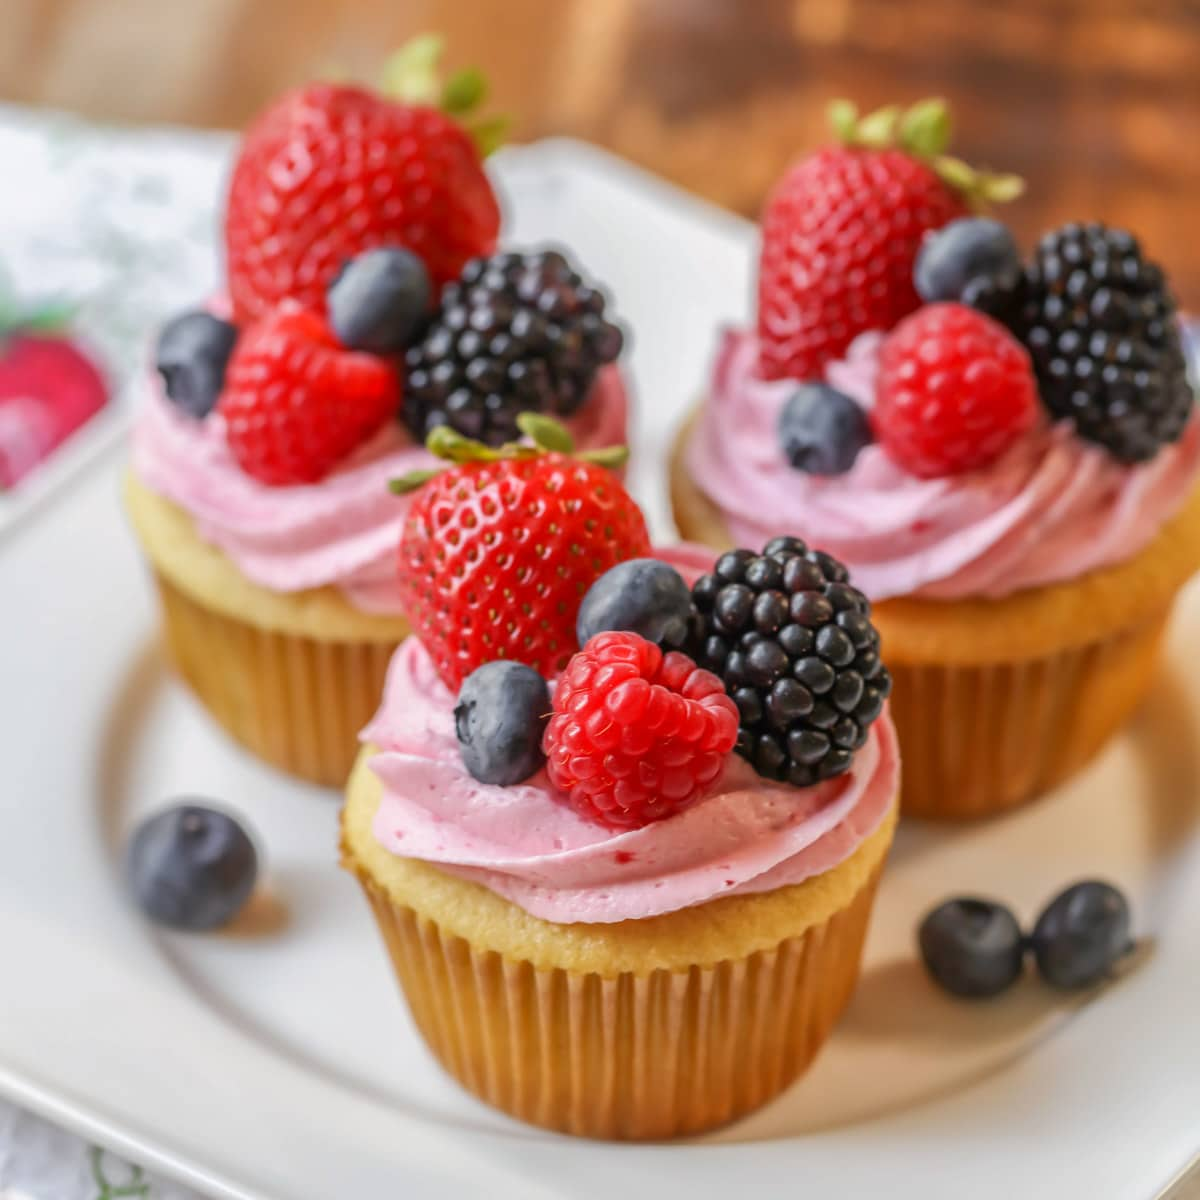 Berry buttercream frosting on top of cupcakes with fresh berries